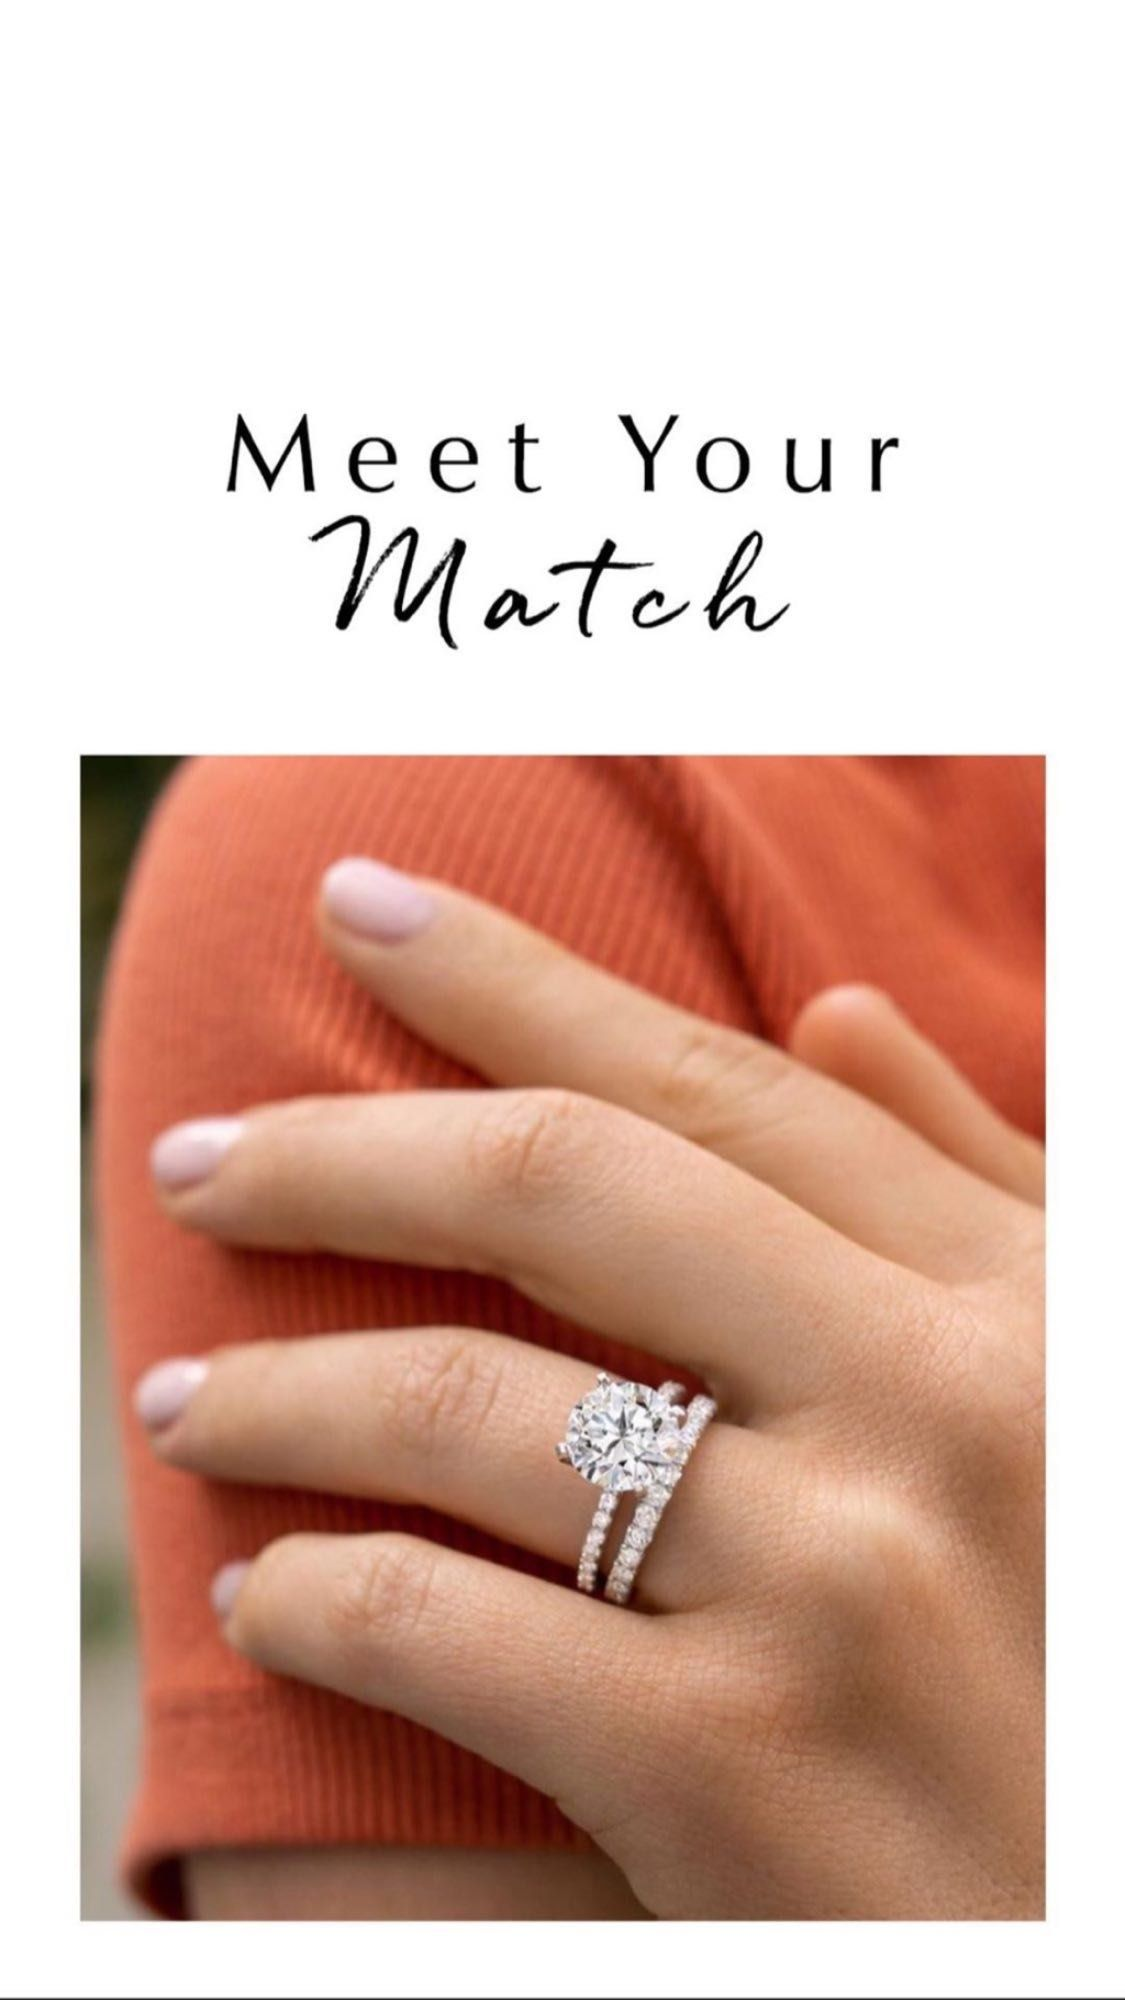 Rings Find Their Perfect Match In Our Collection Of Timeless Engagement Ring And Wedding Ring Sets Wedding Ring Hand Matching Wedding Rings Wedding Ring Sets